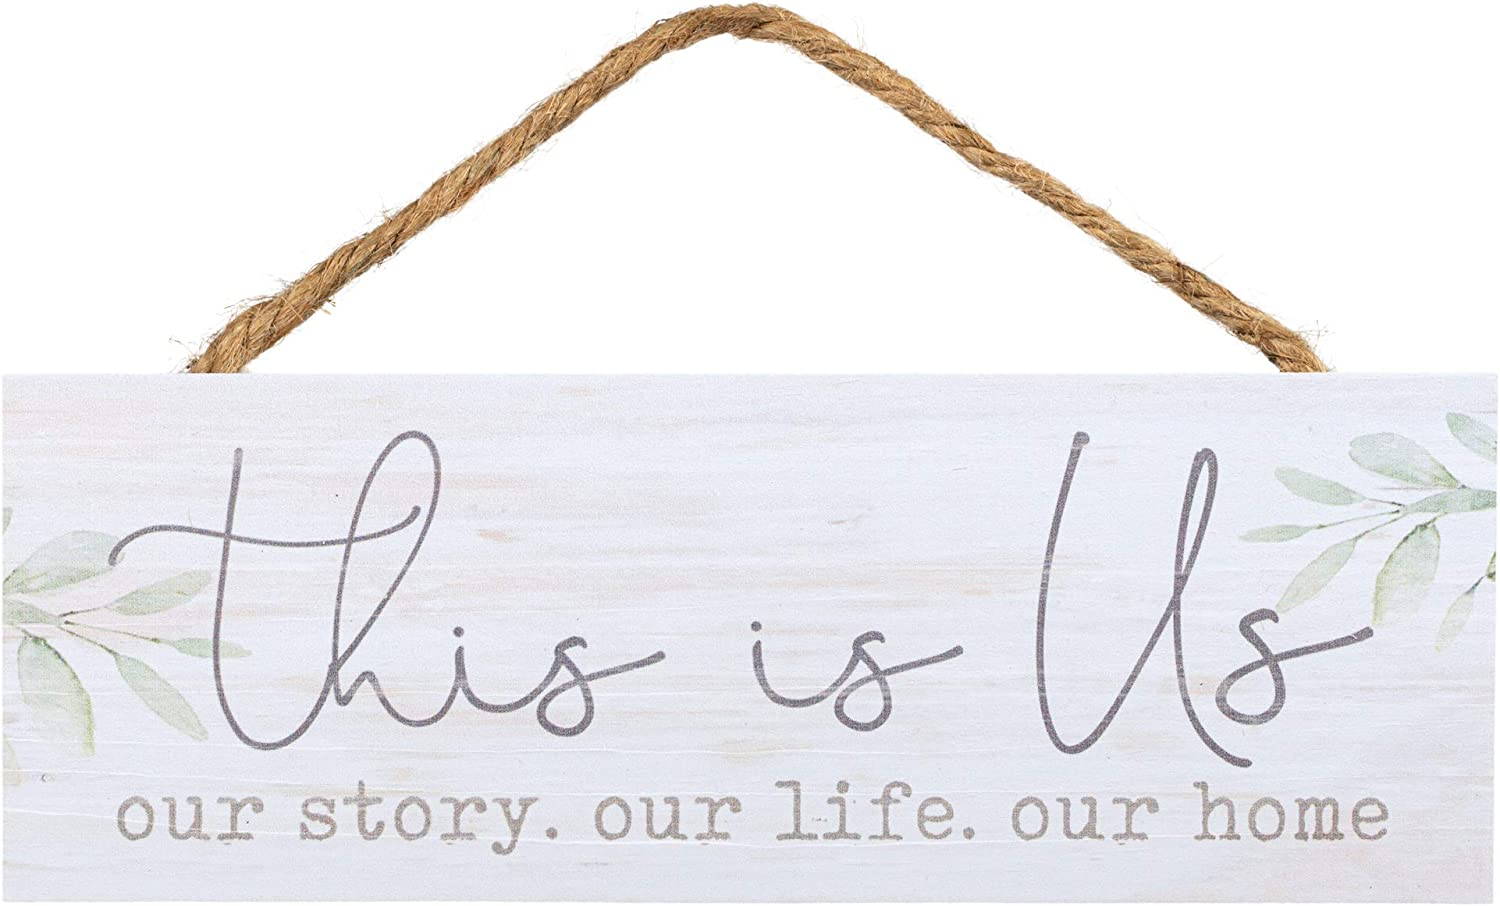 P. Graham Dunn This is Us Our Life Home Whitewash 10 x 3.5 Inch Pine Wood Slat Hanging Wall Sign